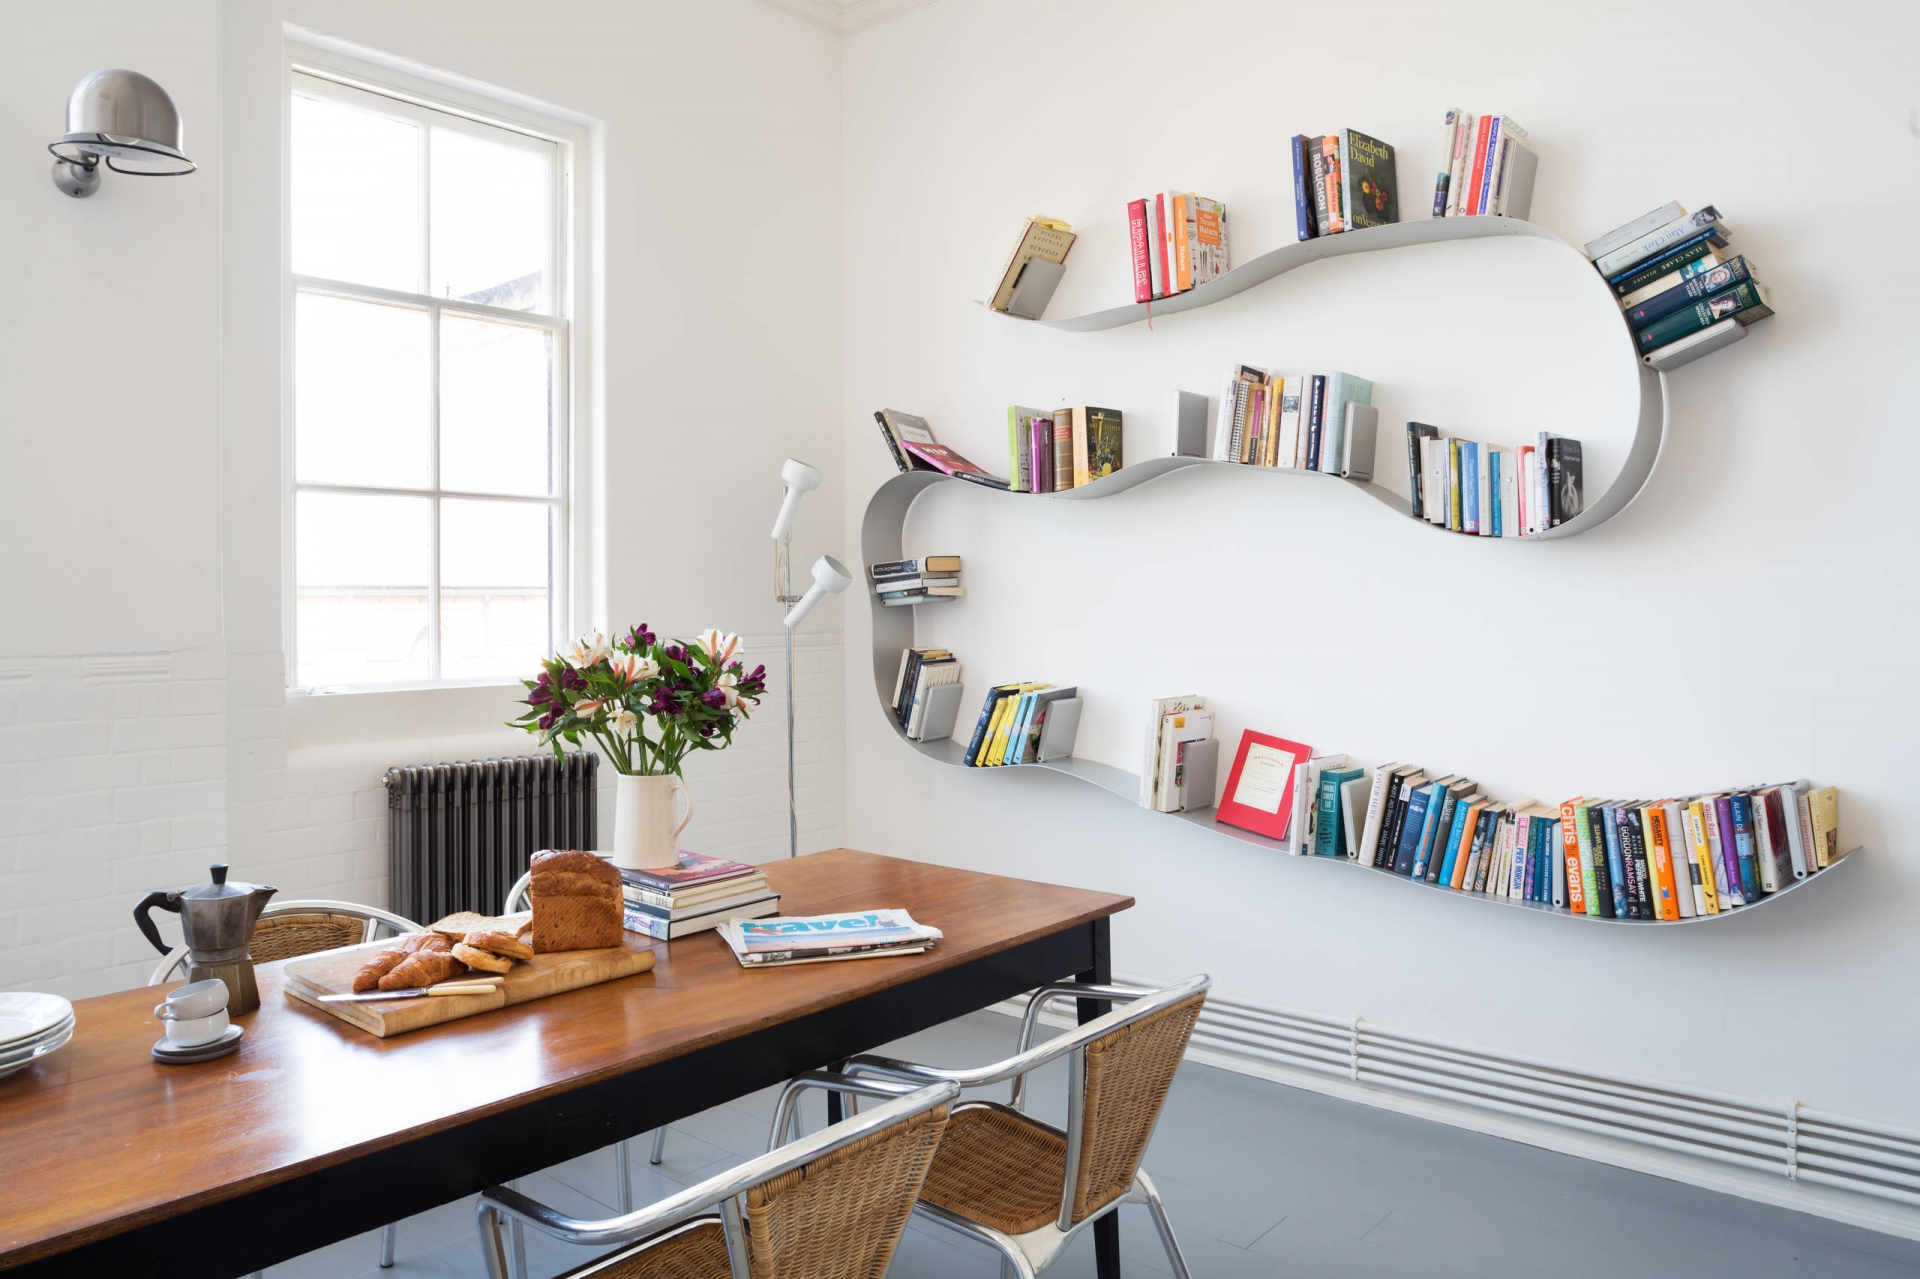 Bookshelf Ideas Part - 17: 6. Set On A Curve